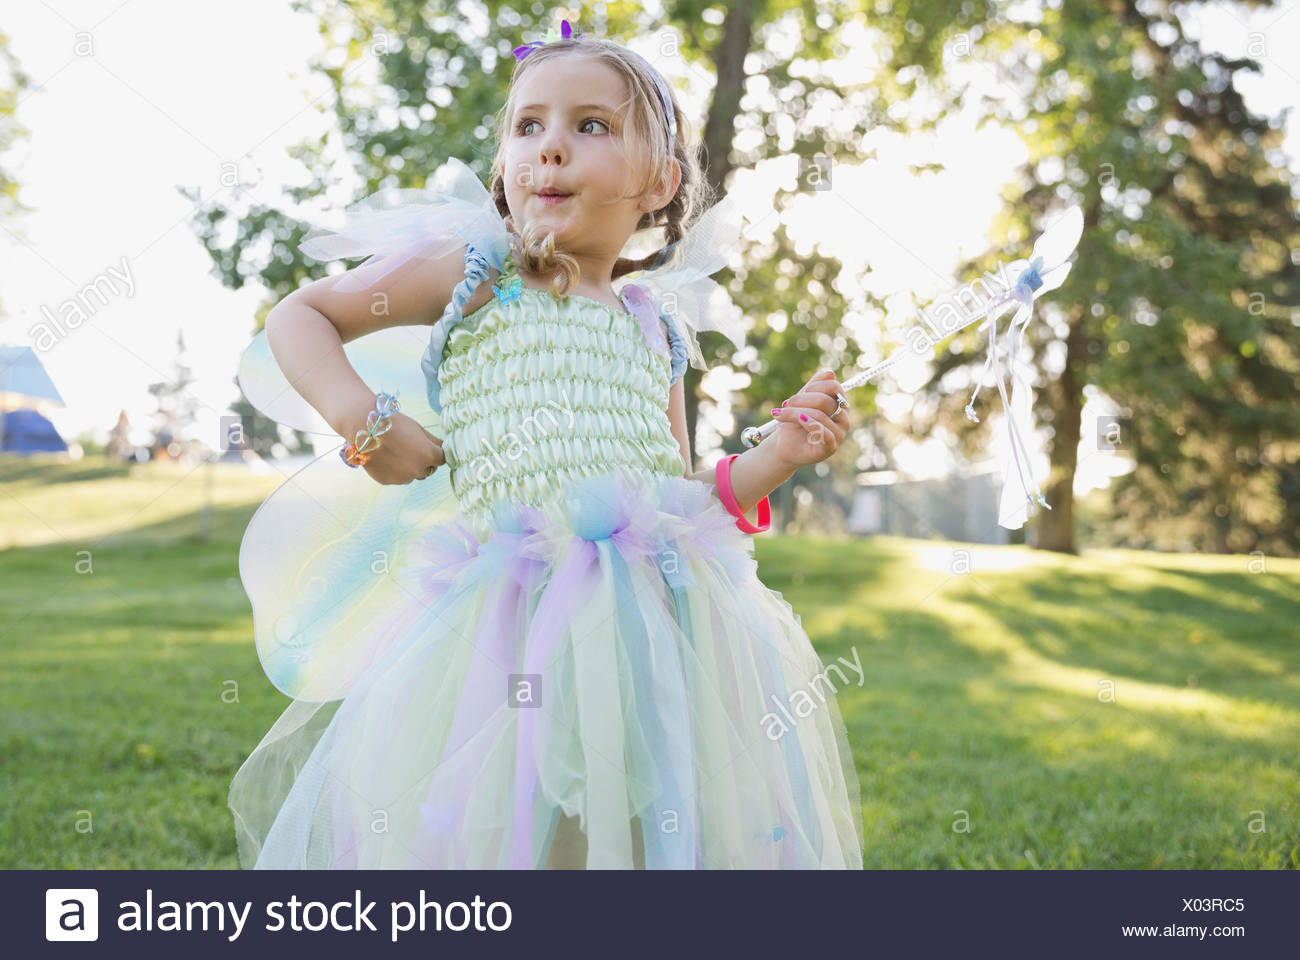 Cute girl wearing fairy costume outdoors - Stock Image